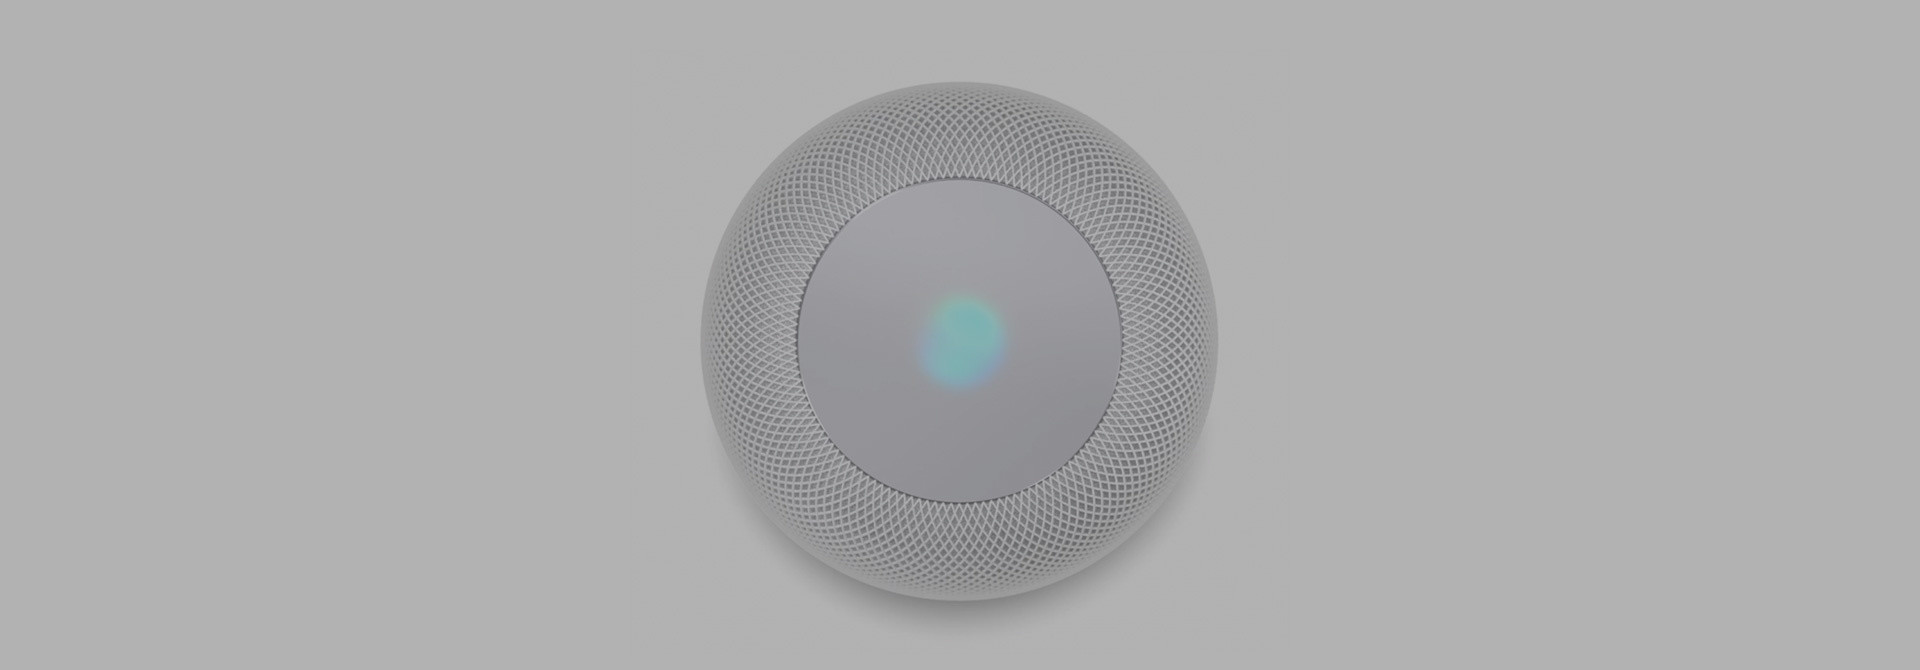 Apple HomePod Coaster